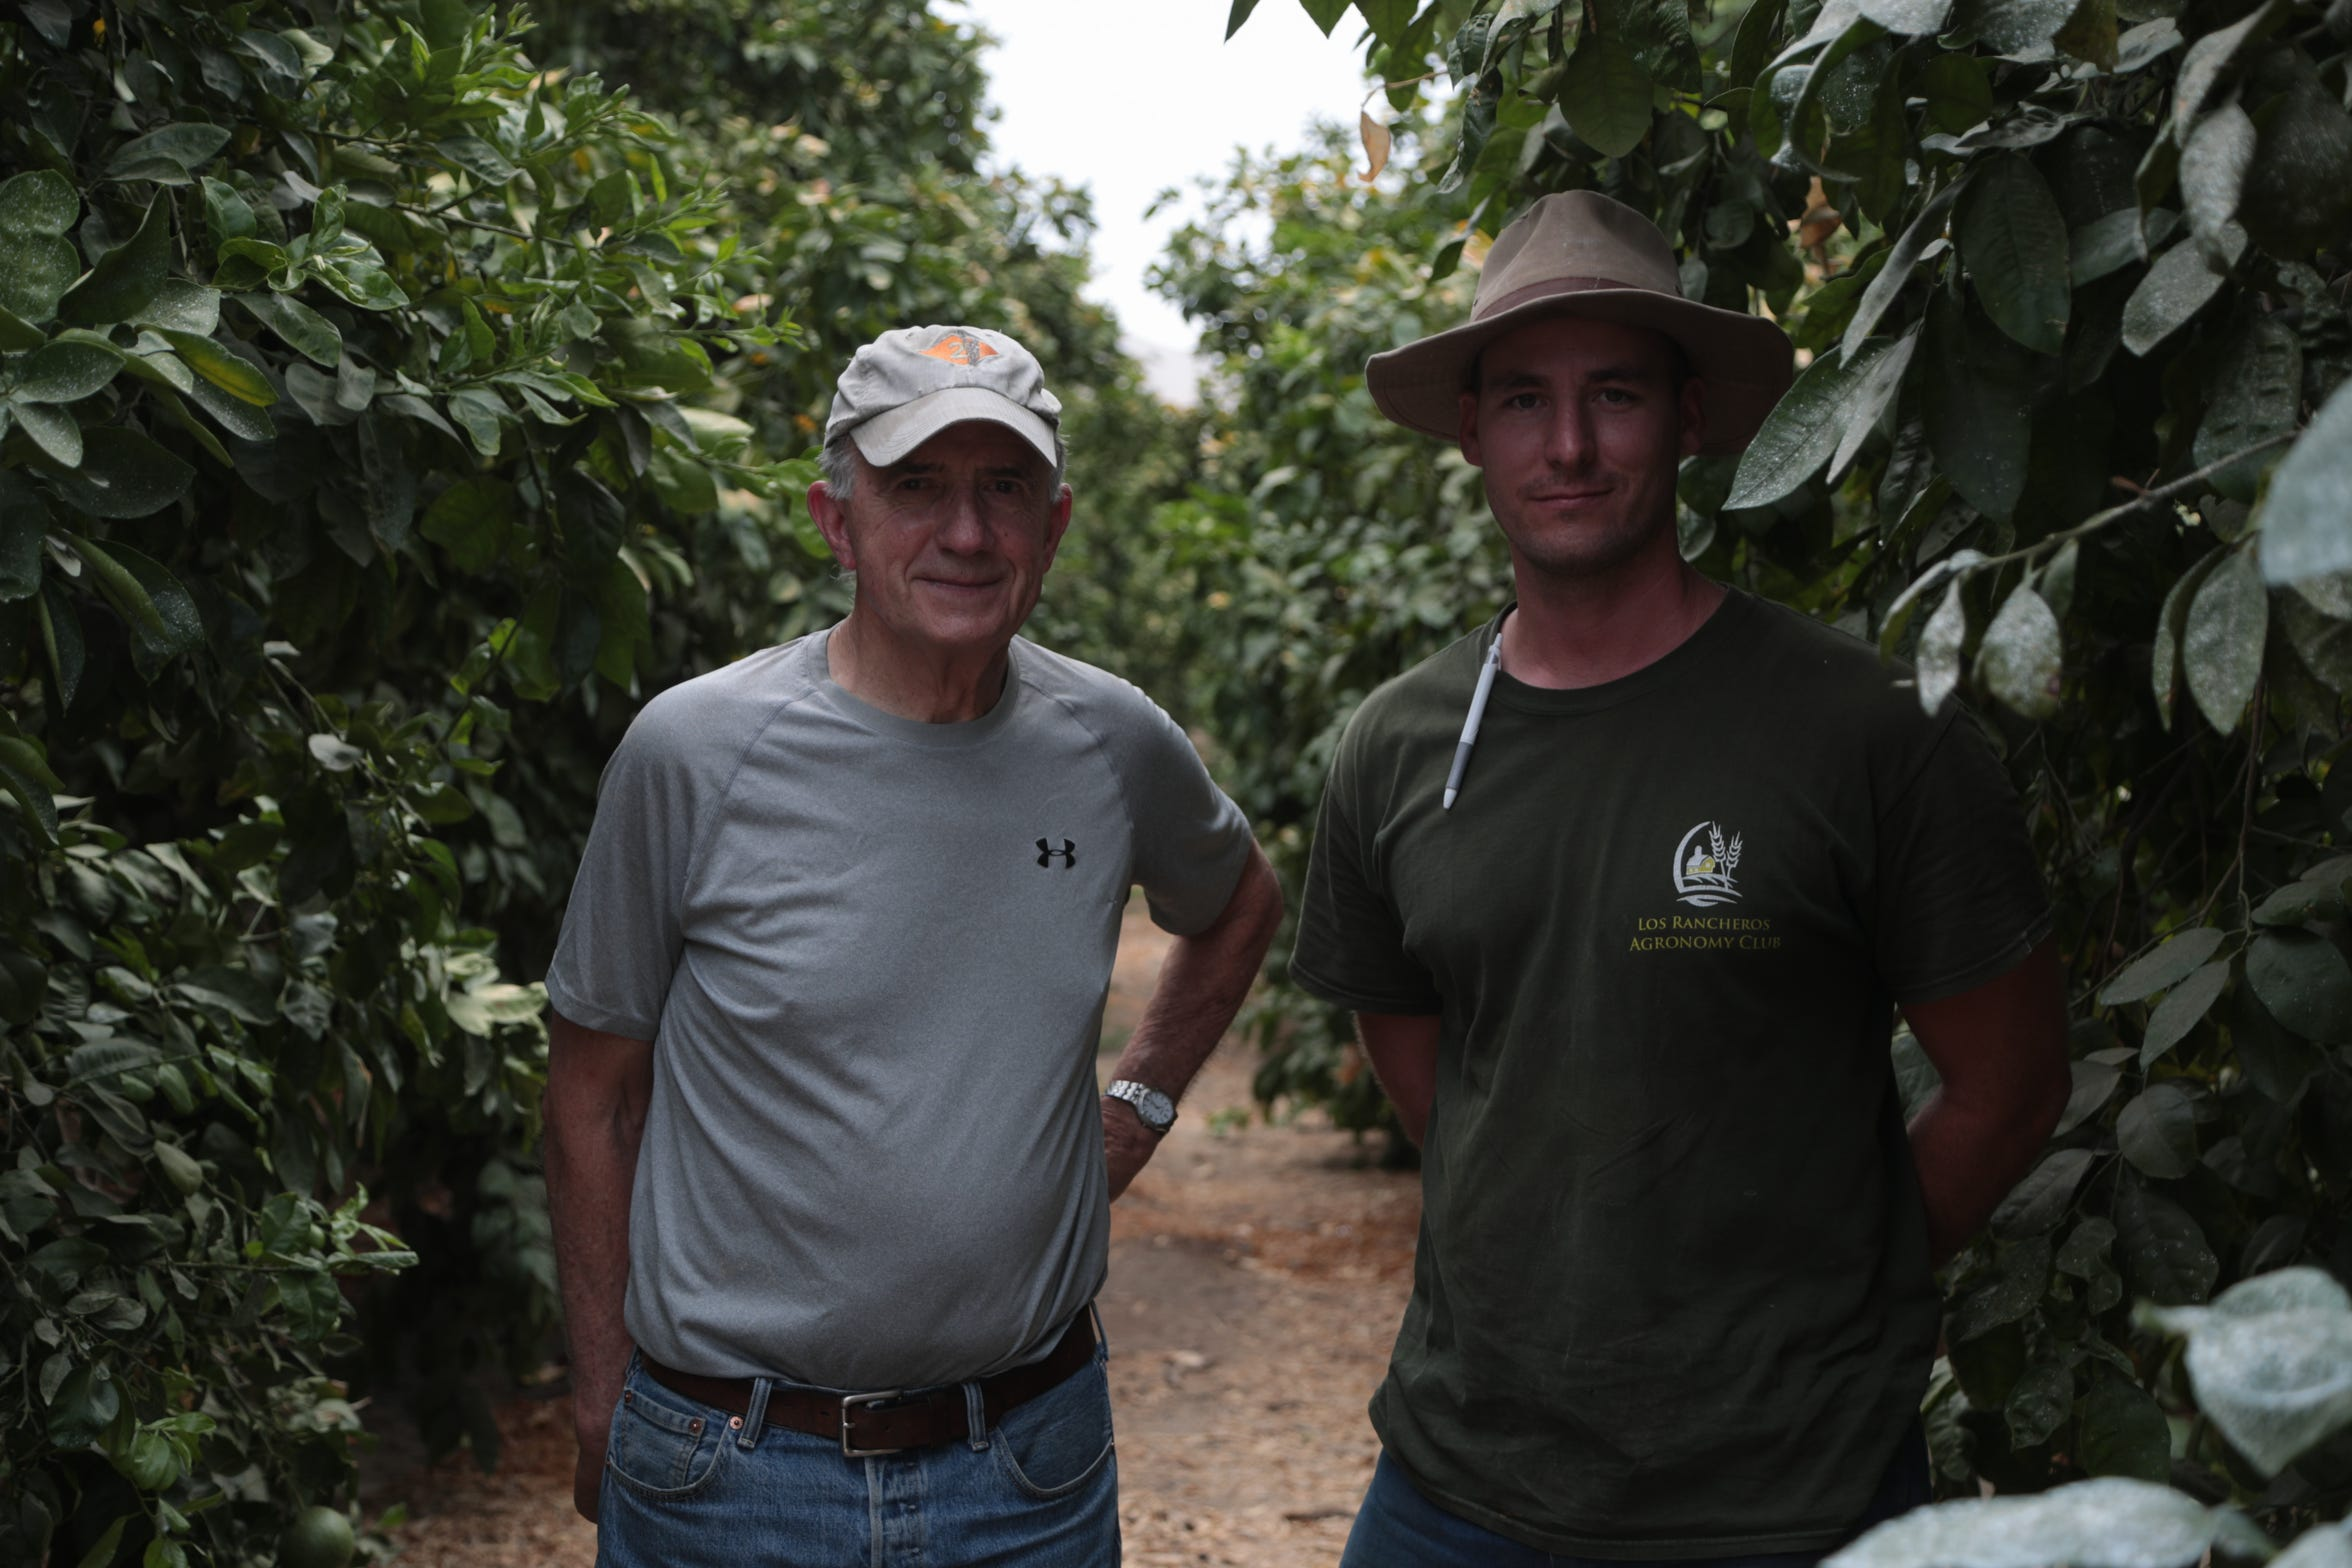 Jim Seley, left, and farm manager Zane Smiley stand between rows of citrus trees at Seley Ranches in Borrego Springs, Calif.